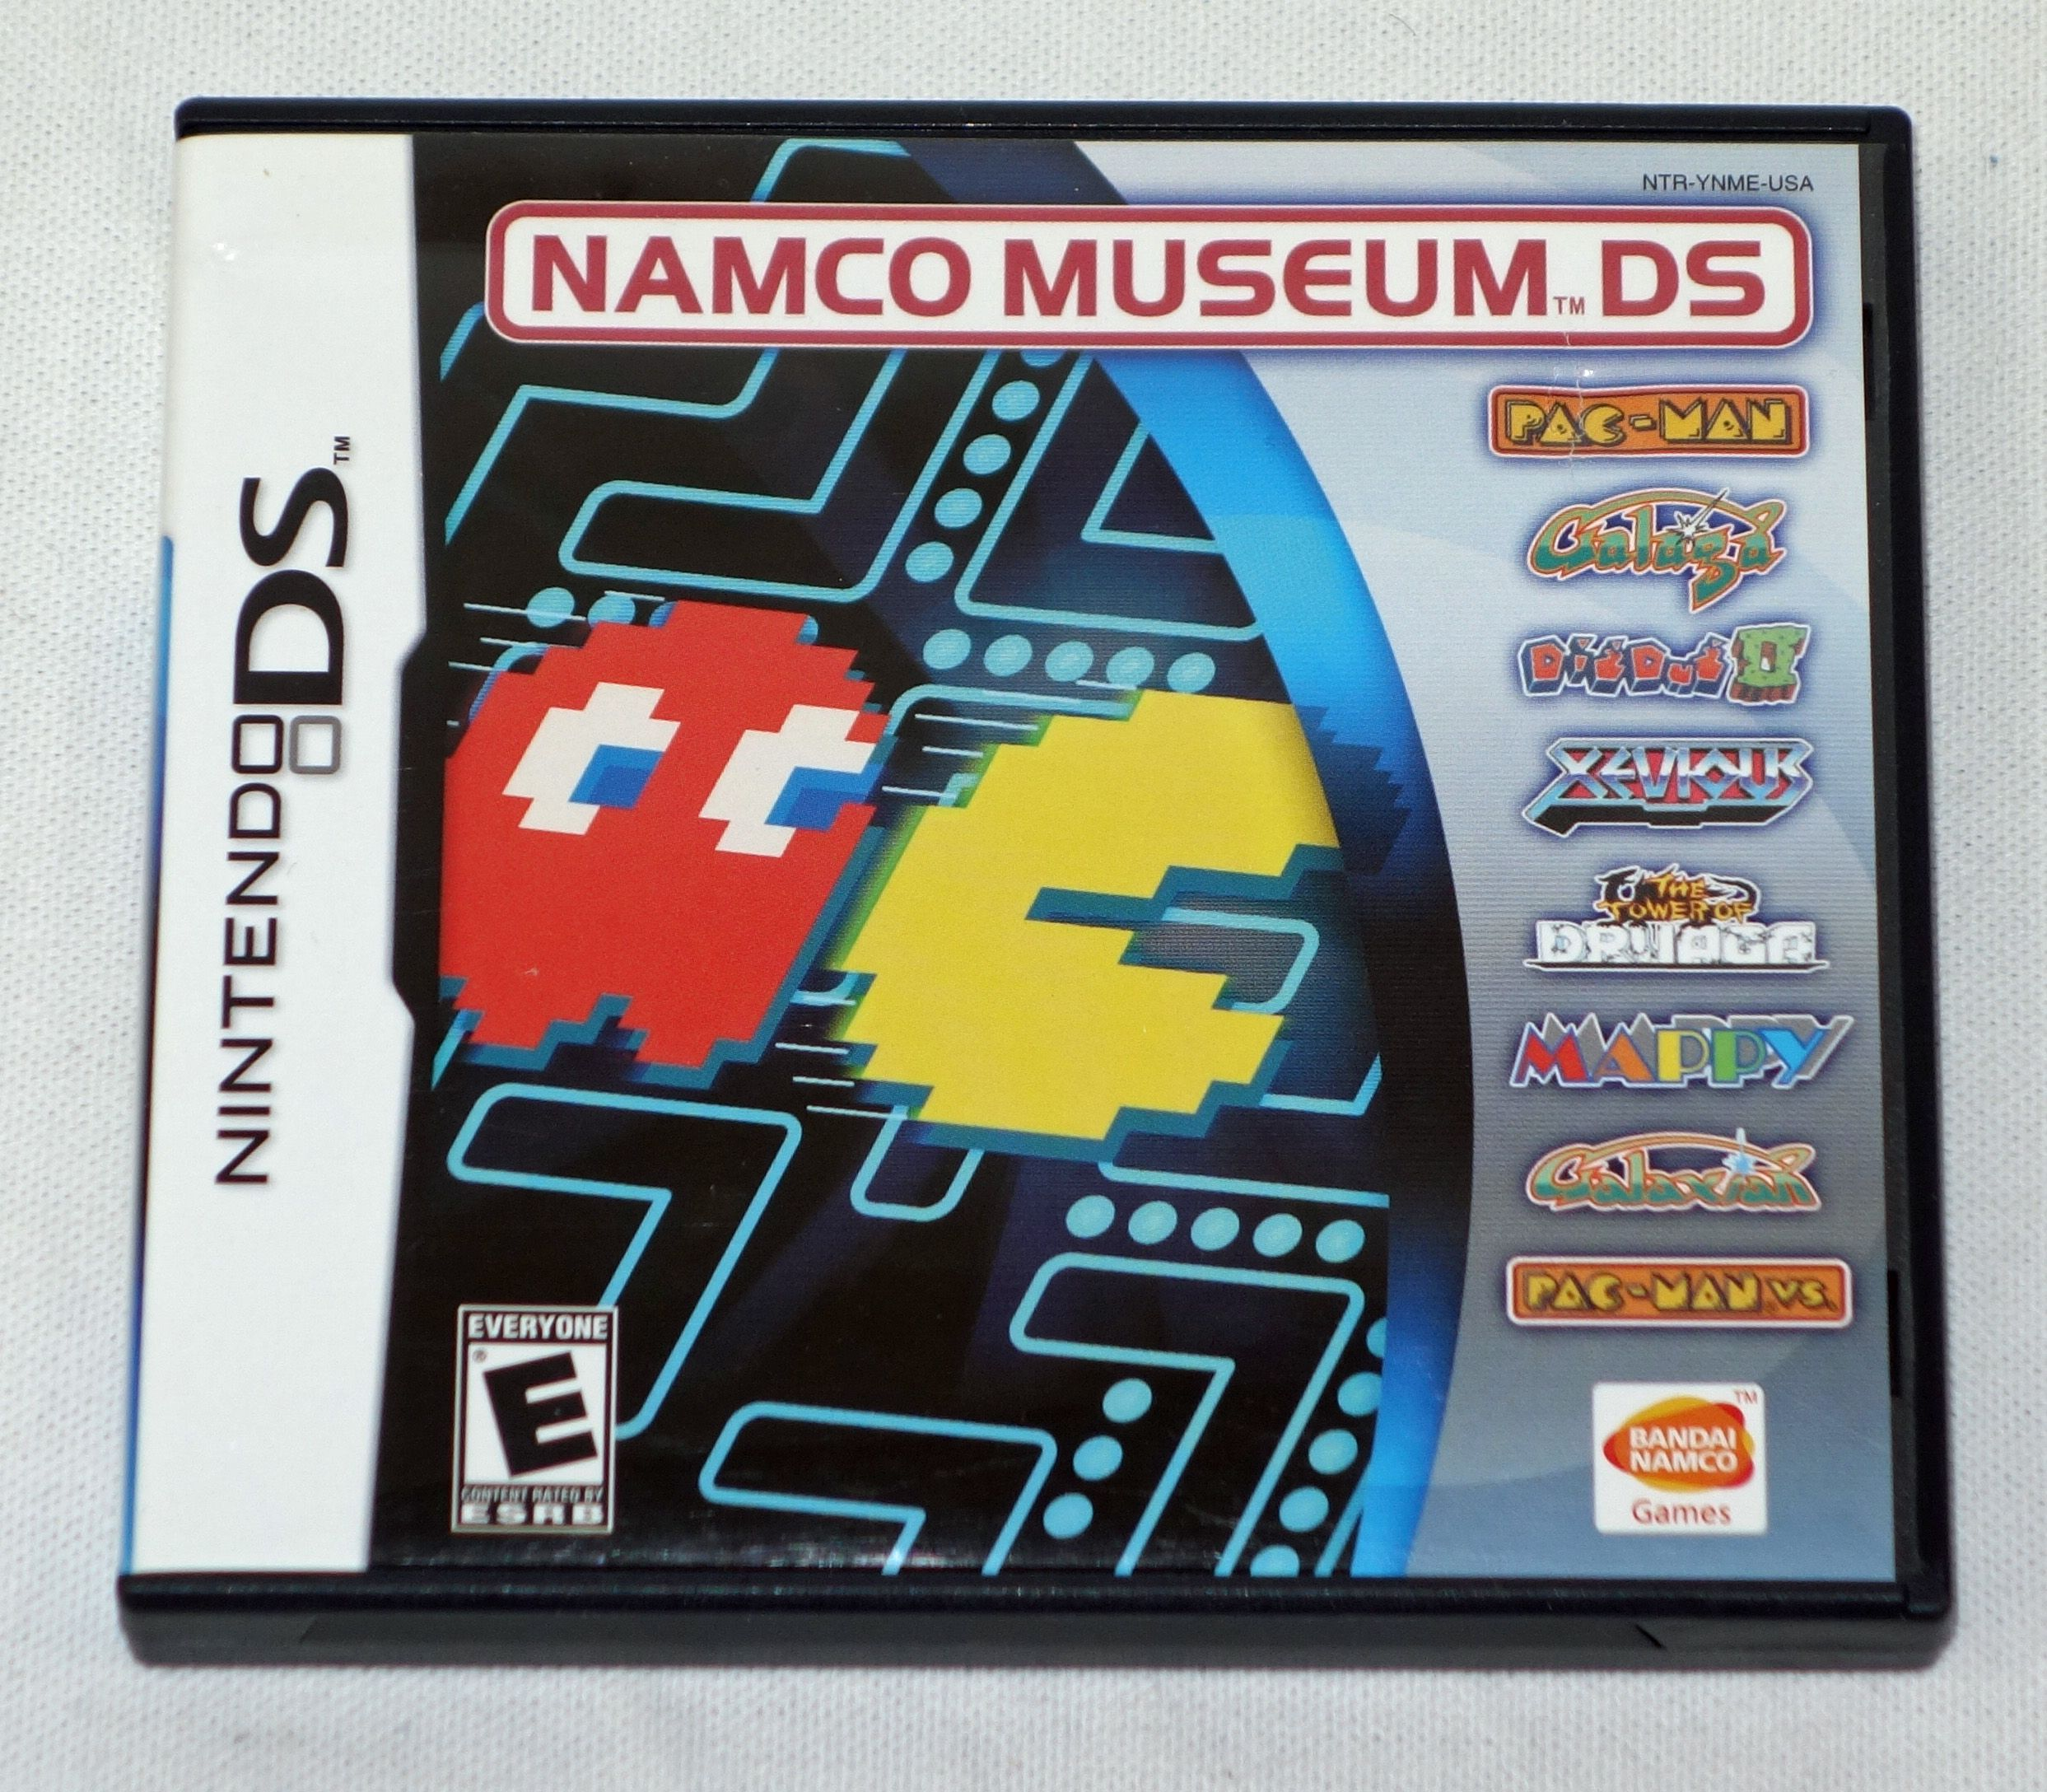 namco museum nintendo ds game 8 games in one includes case rh in pinterest com nintendo ds games manuals pdf nintendo ds game manual scans